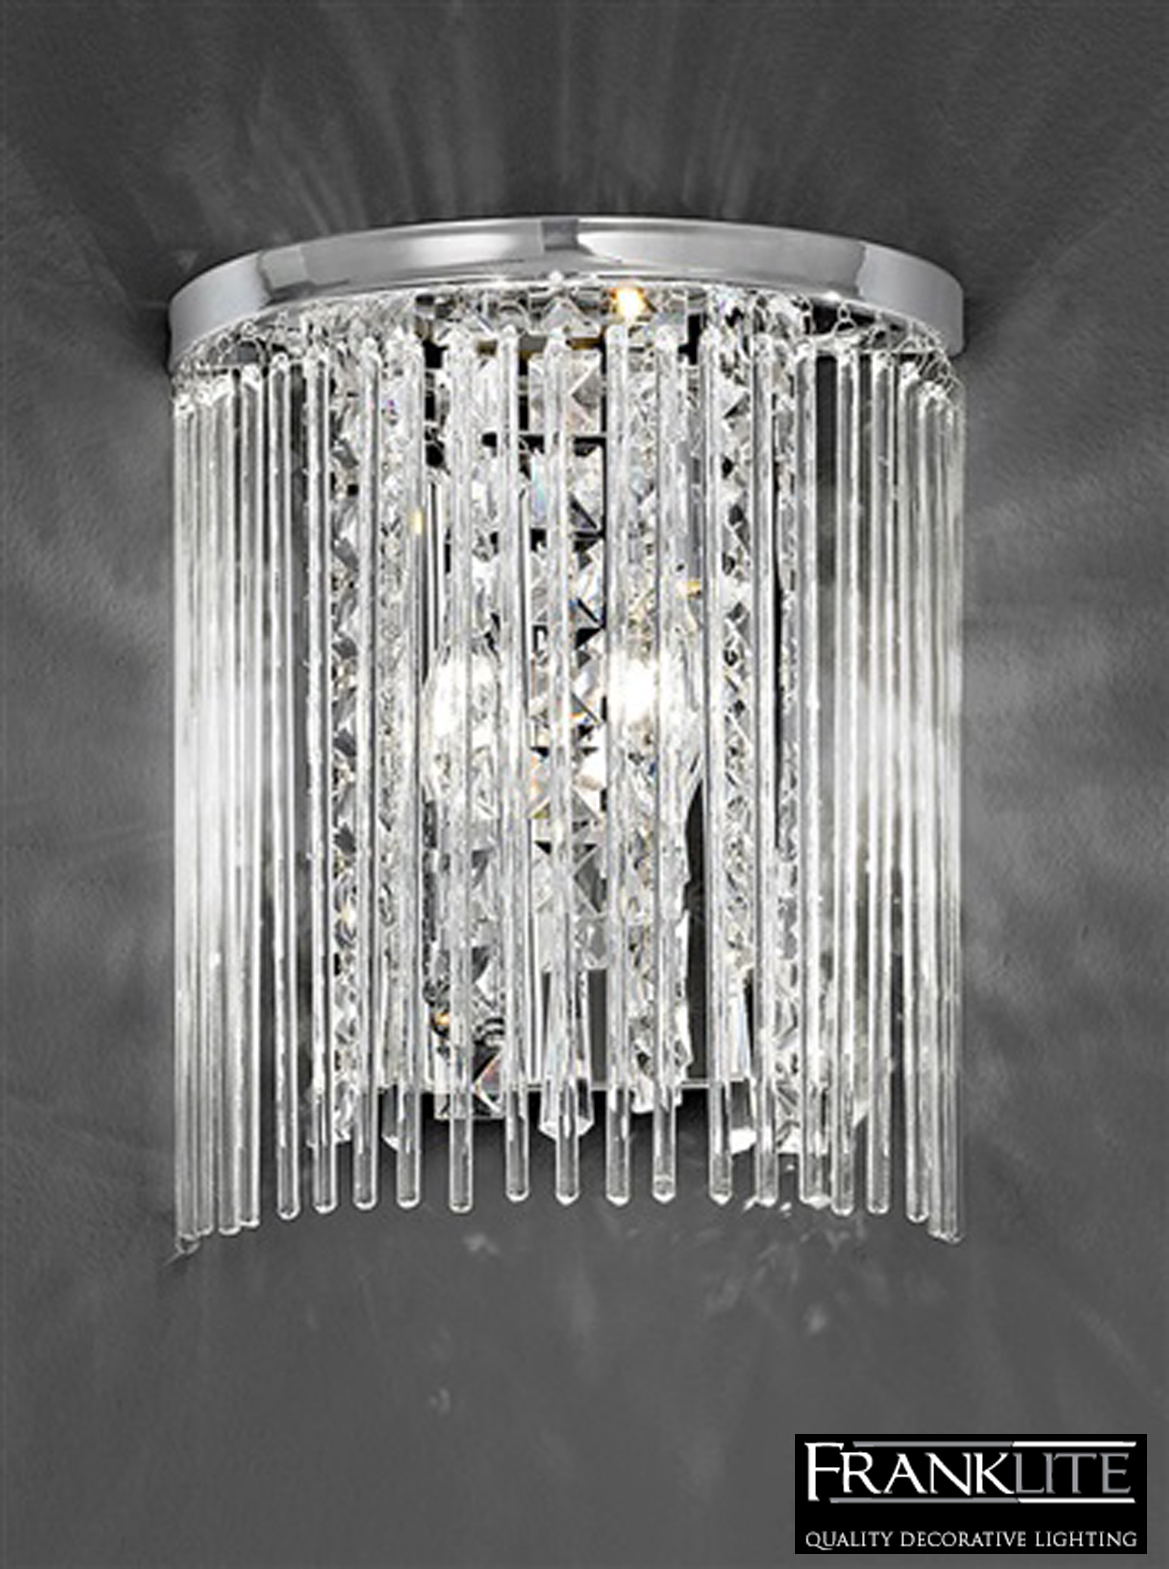 franklite charisma chrome crystal twin wall light fl2310 2 from